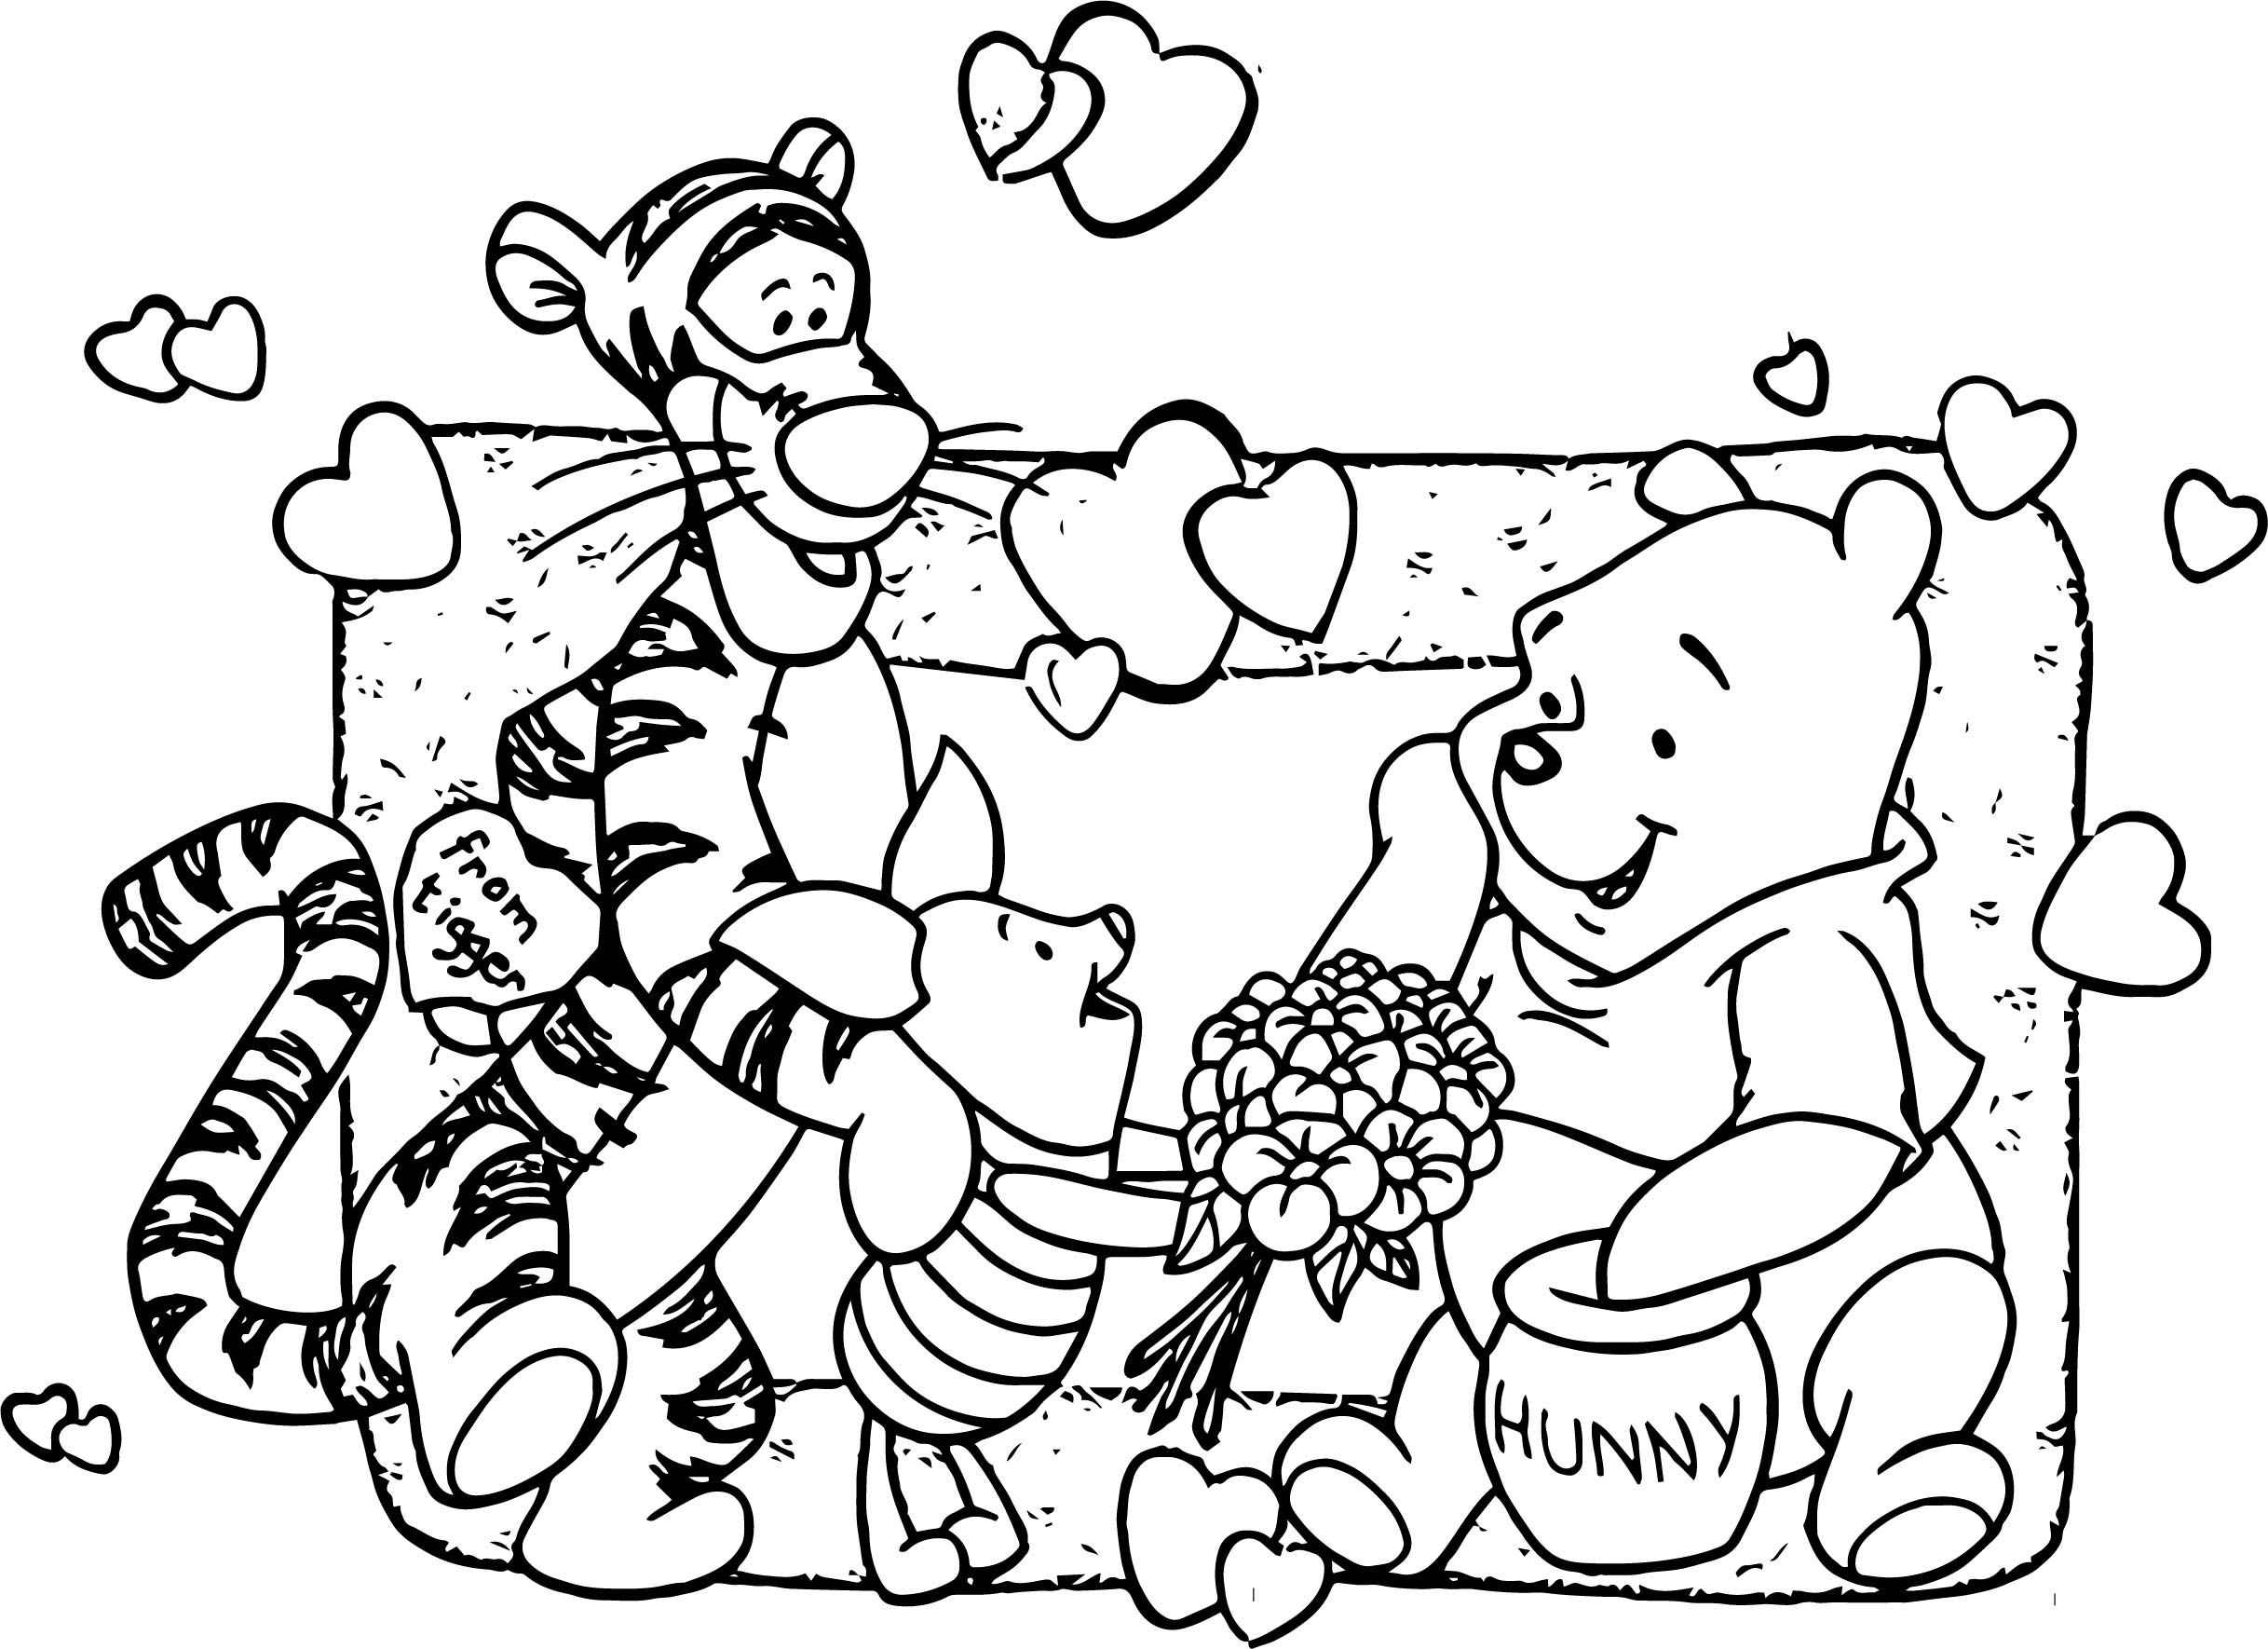 Baby Piglet Winnie The Pooh From Tigger Hunny Coloring